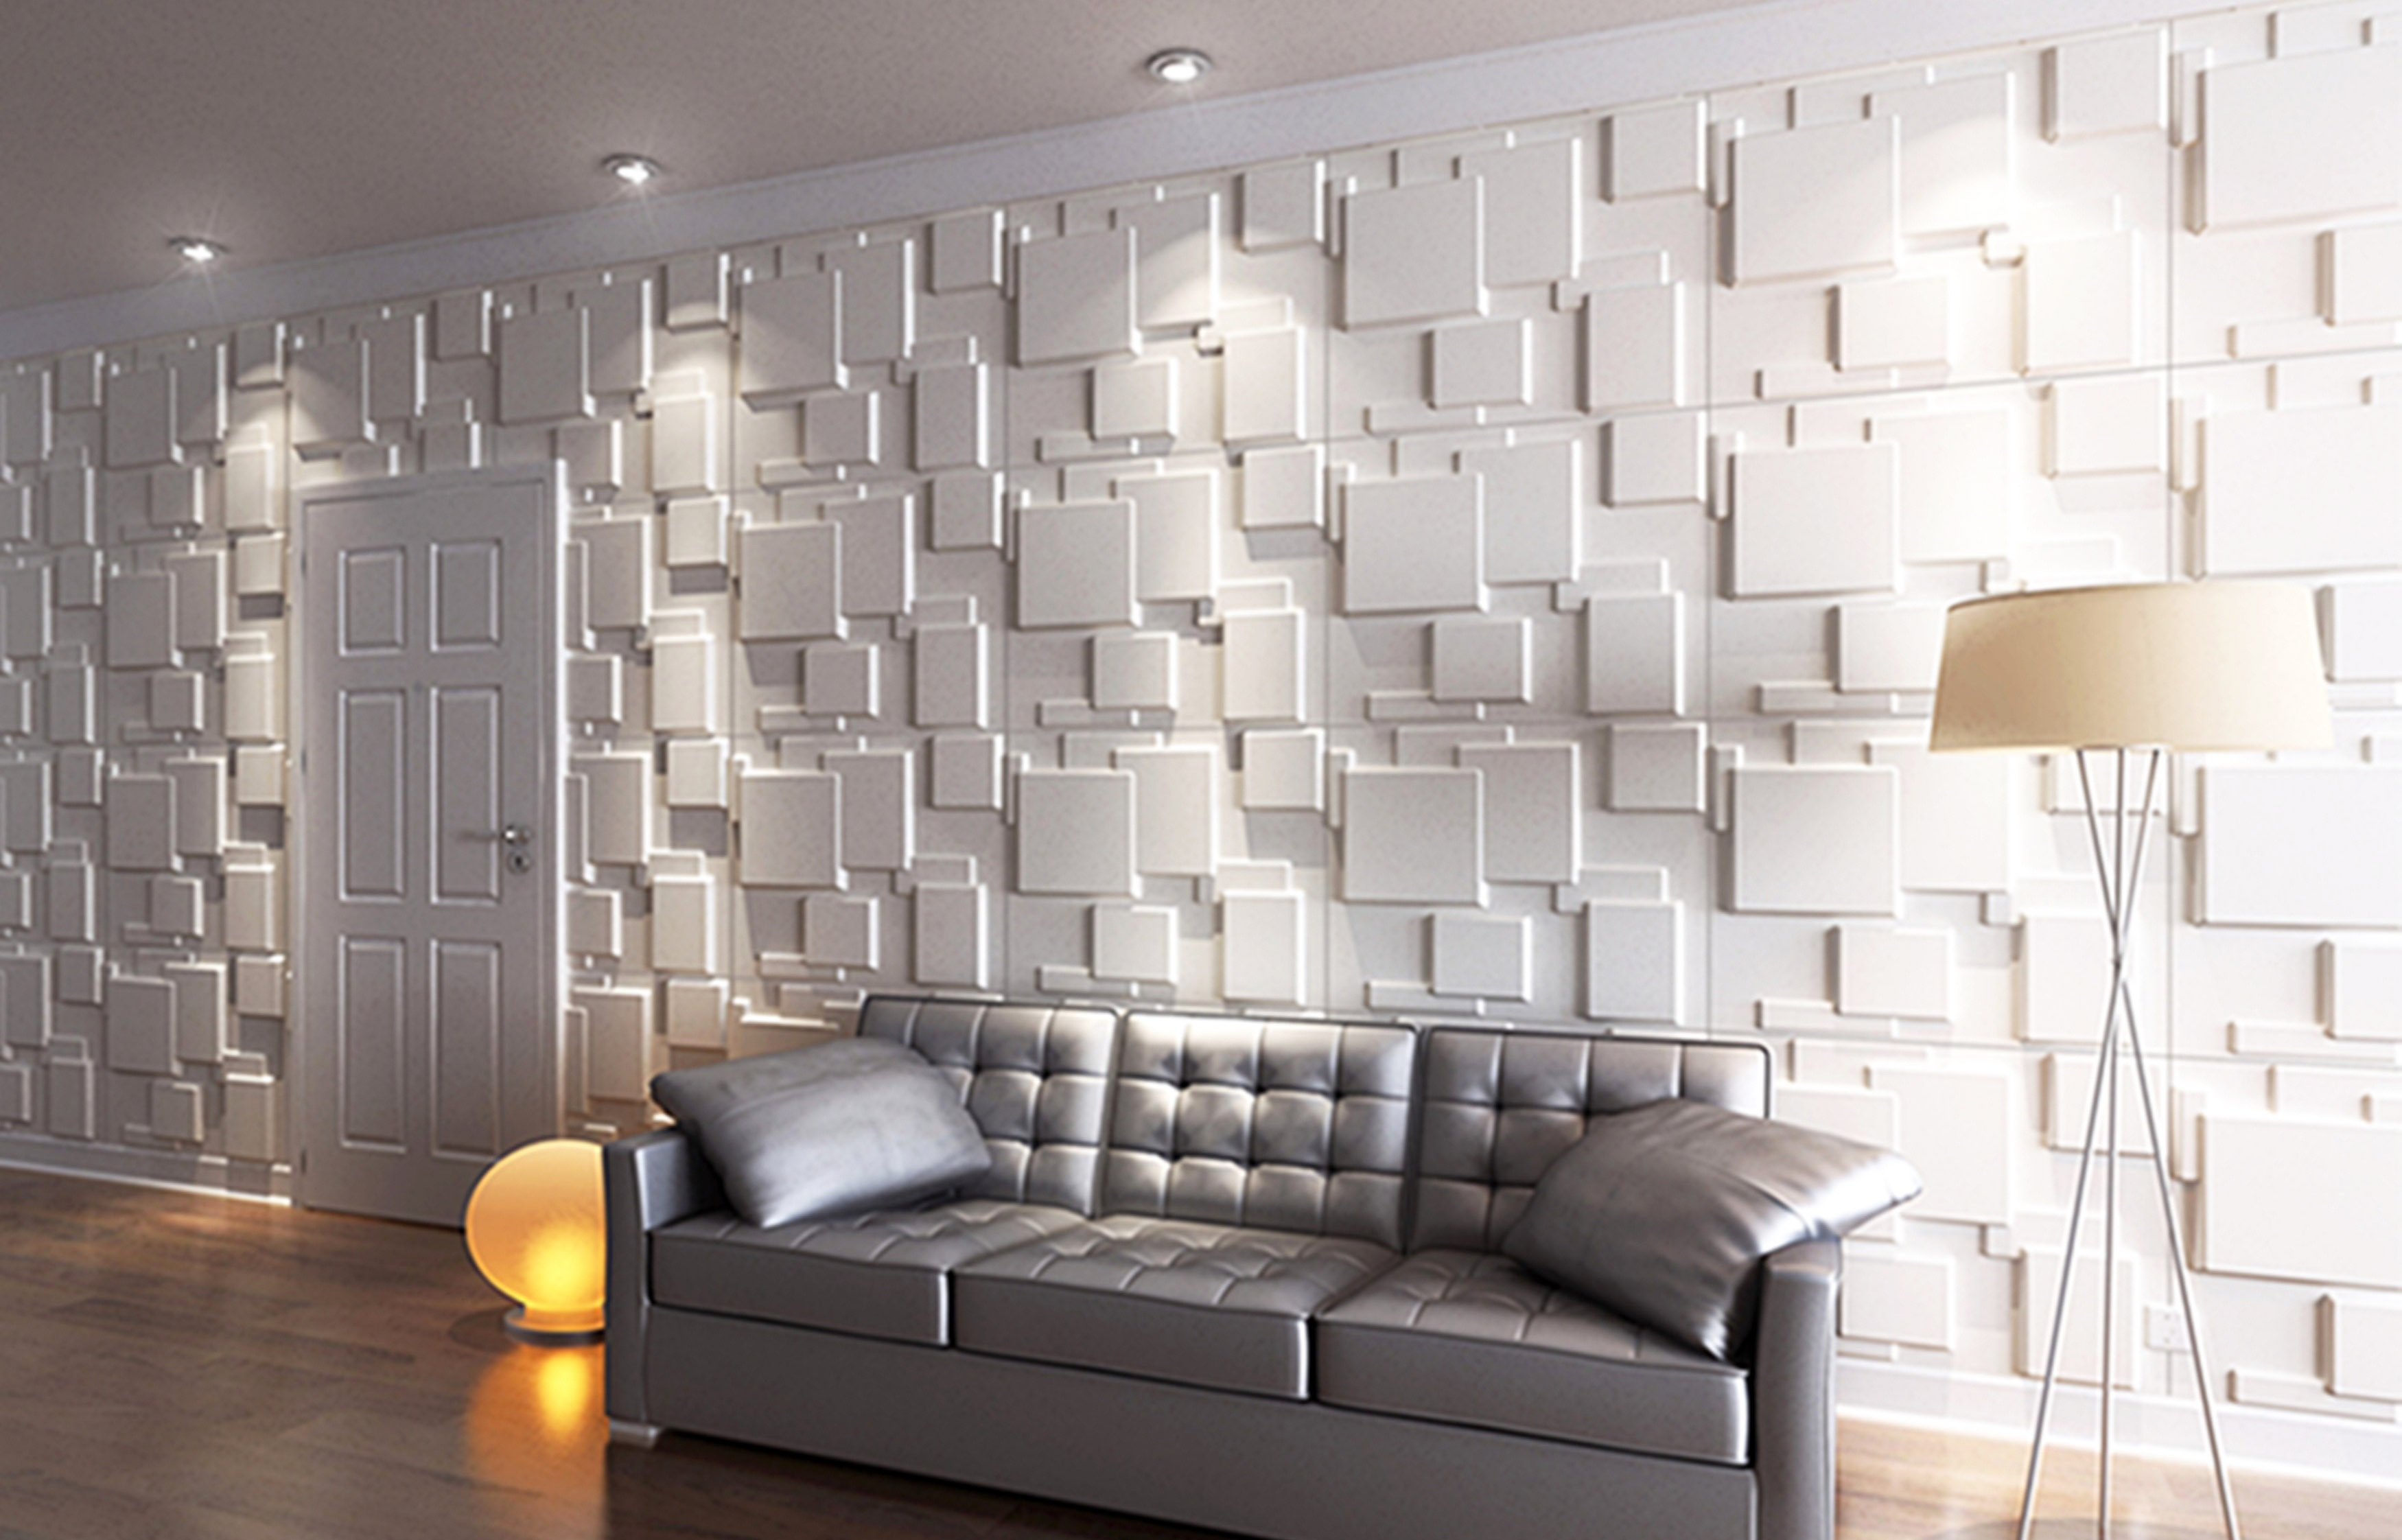 Textured Wall Coverings Modern Wall Covering Ideas For A New Home Decoration Roy Home